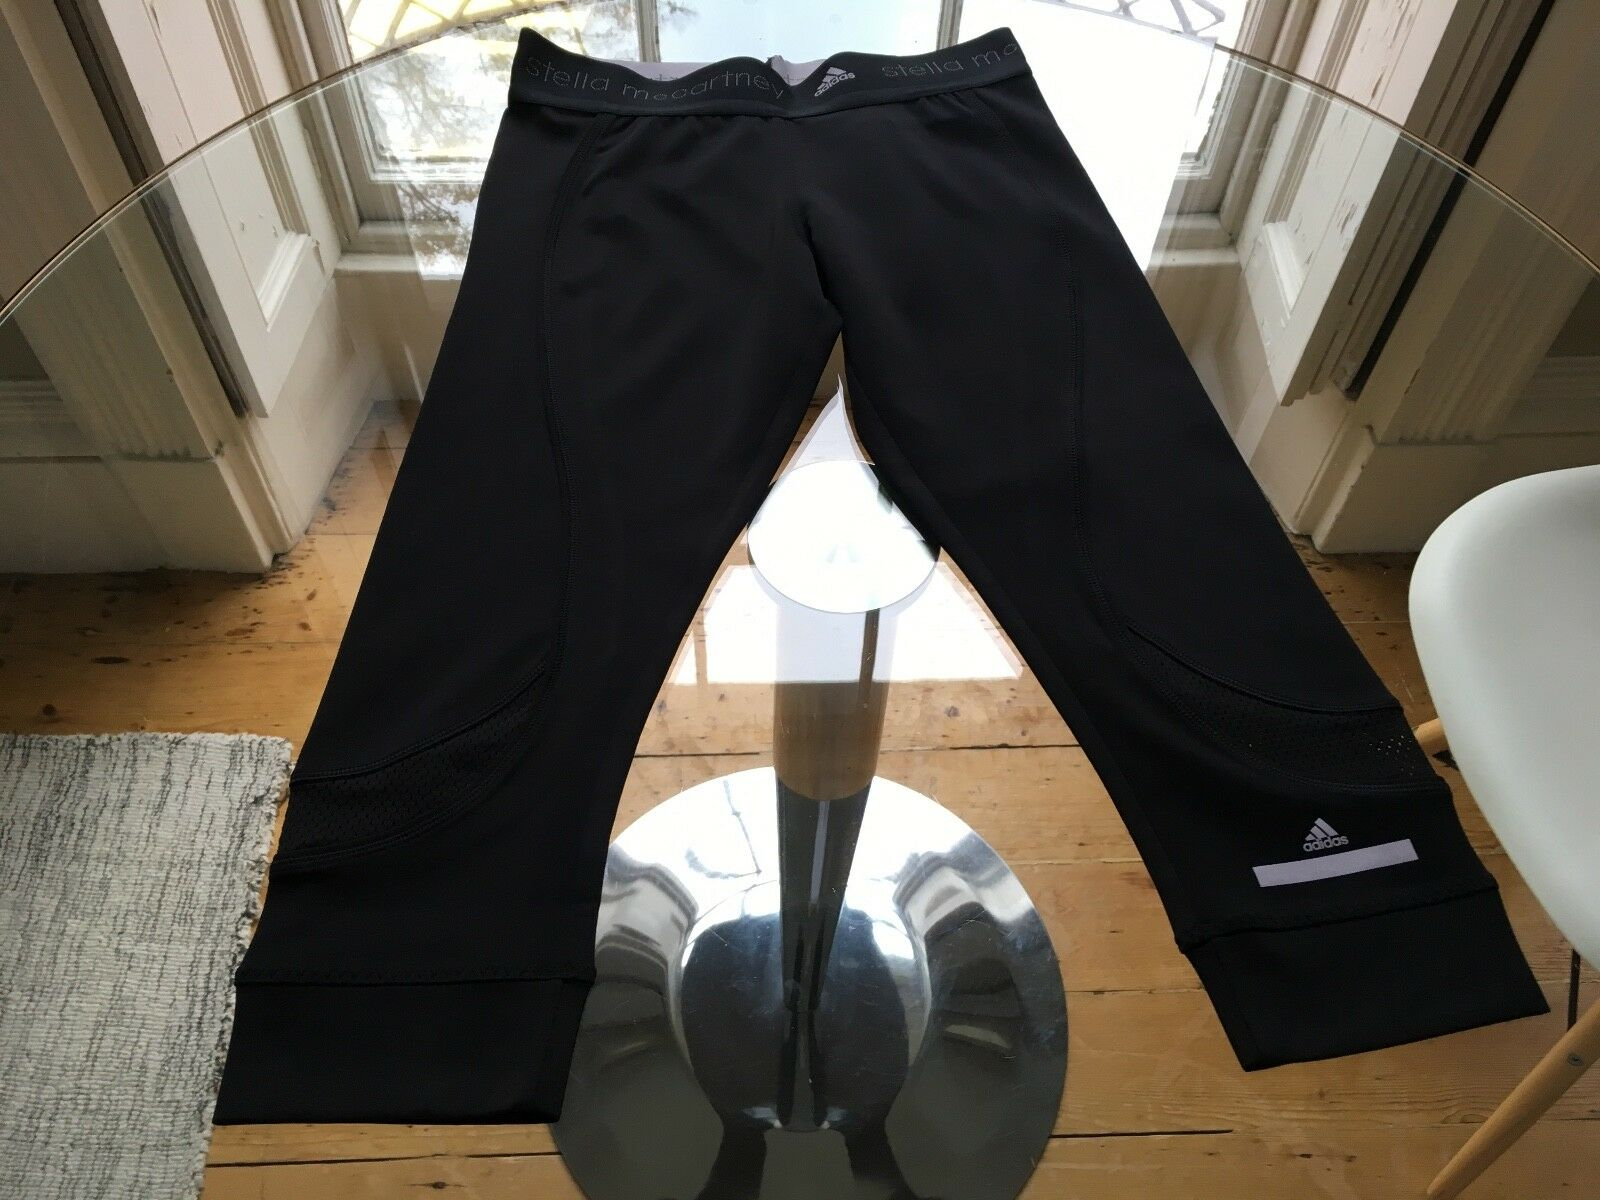 Stella mccartney running pants 3 4 length size small. Perfect condition